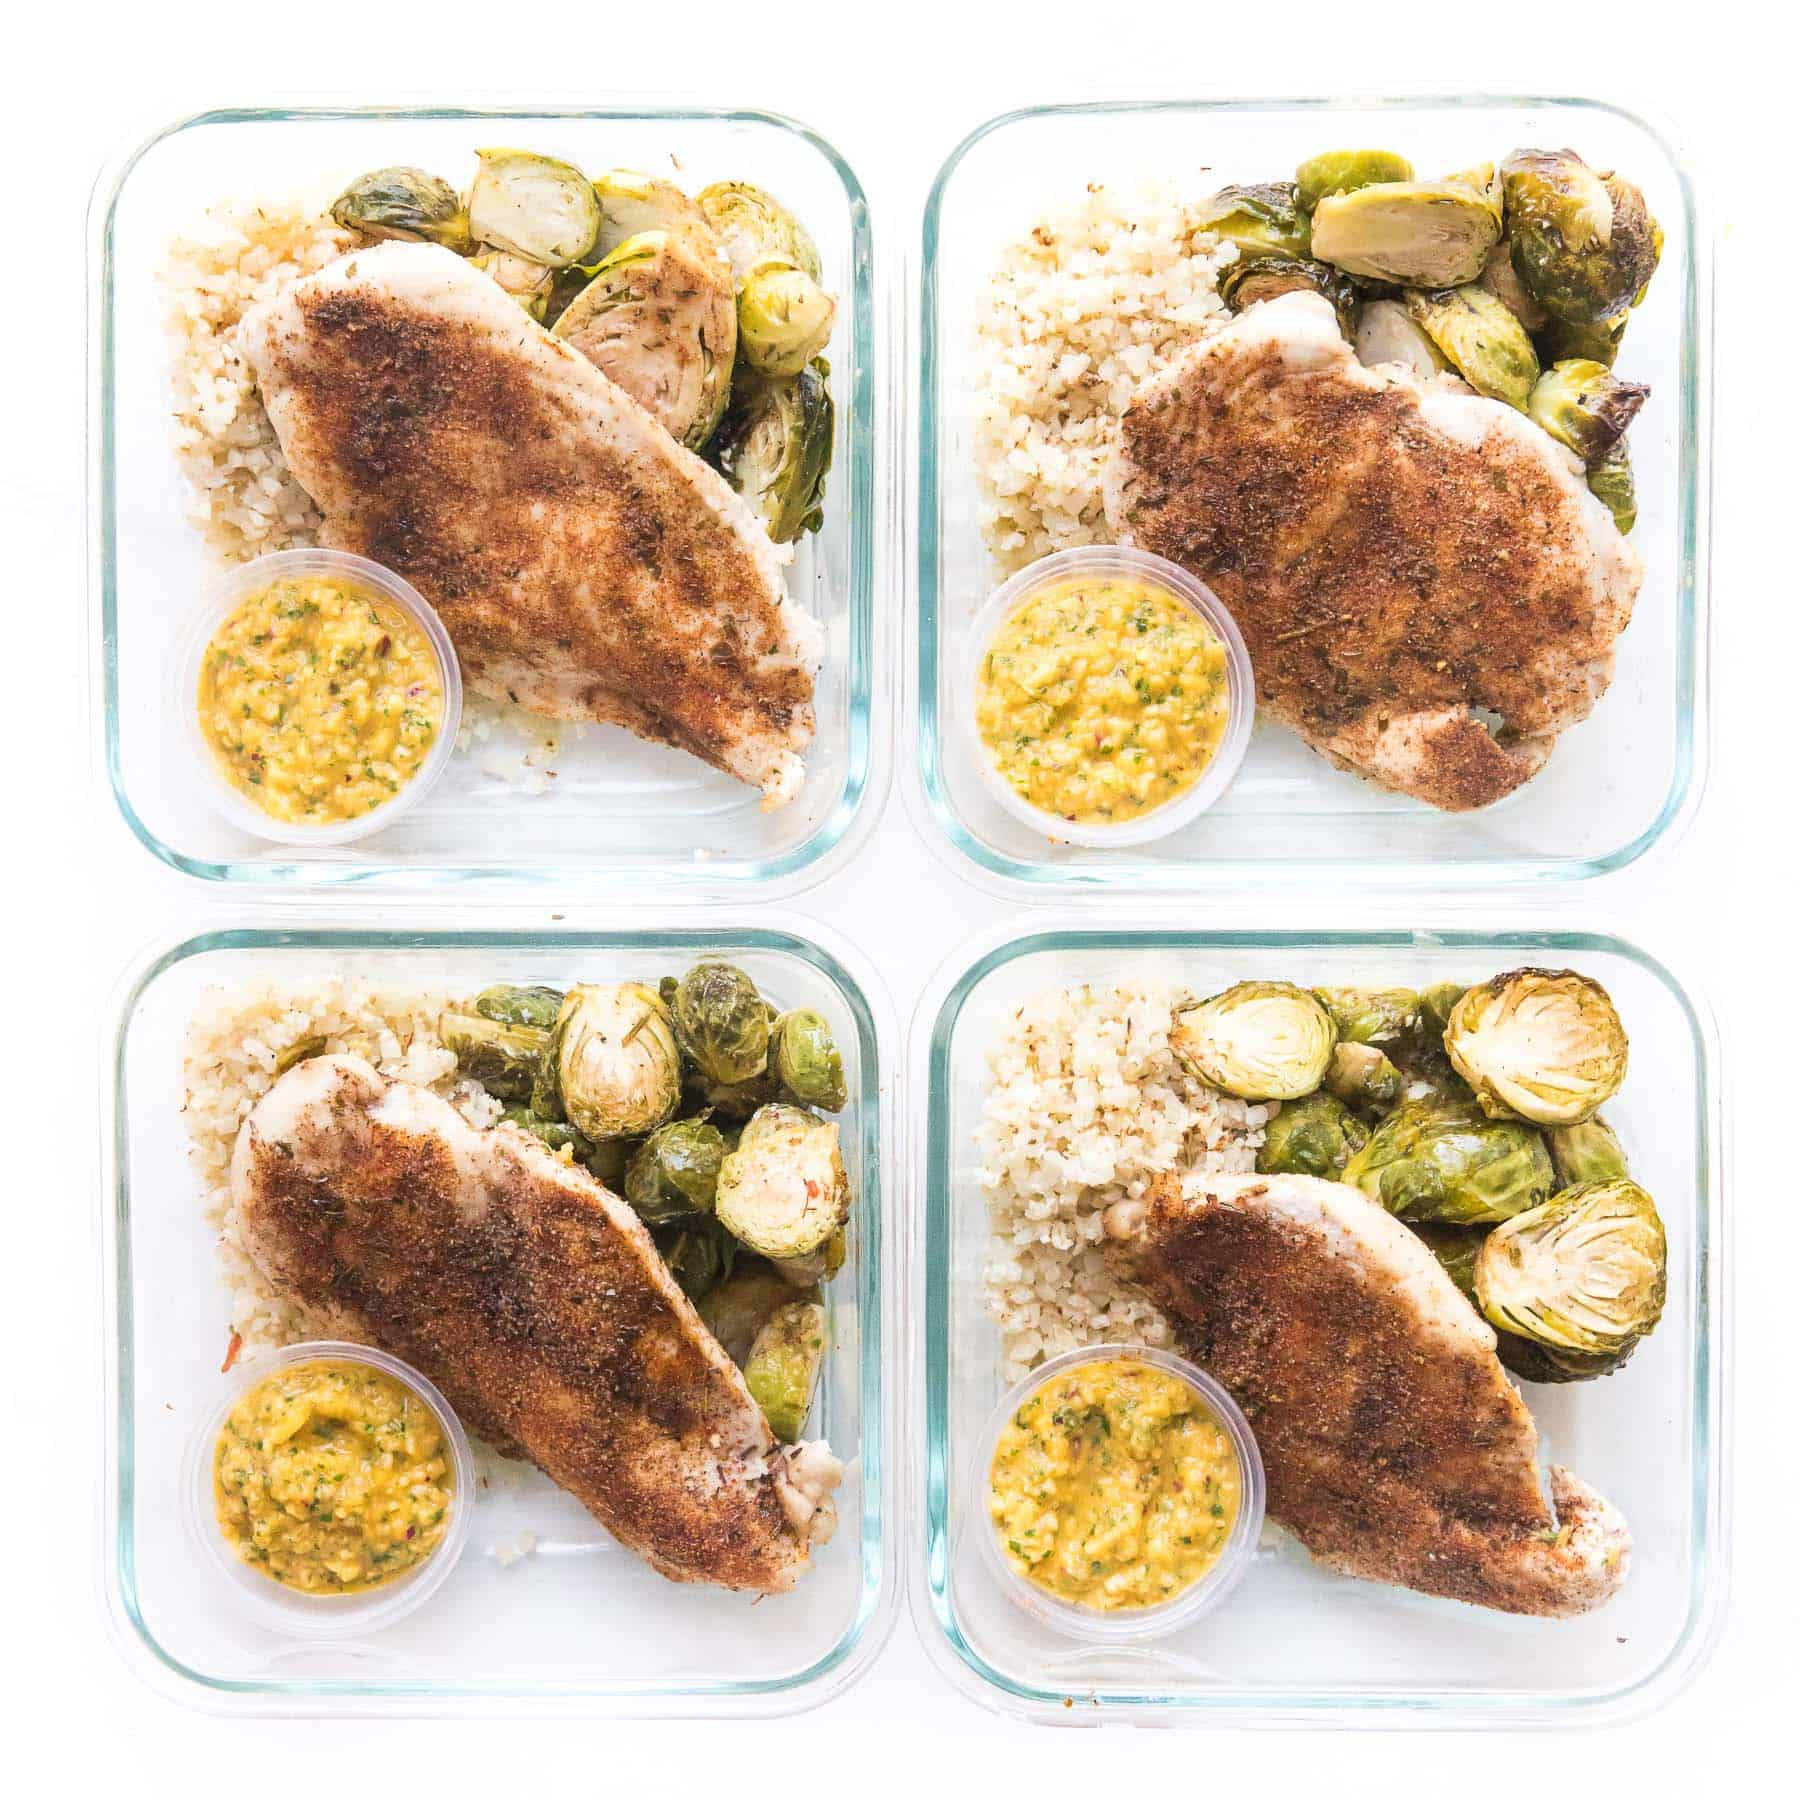 jamaican jerk chicken in meal prep containers